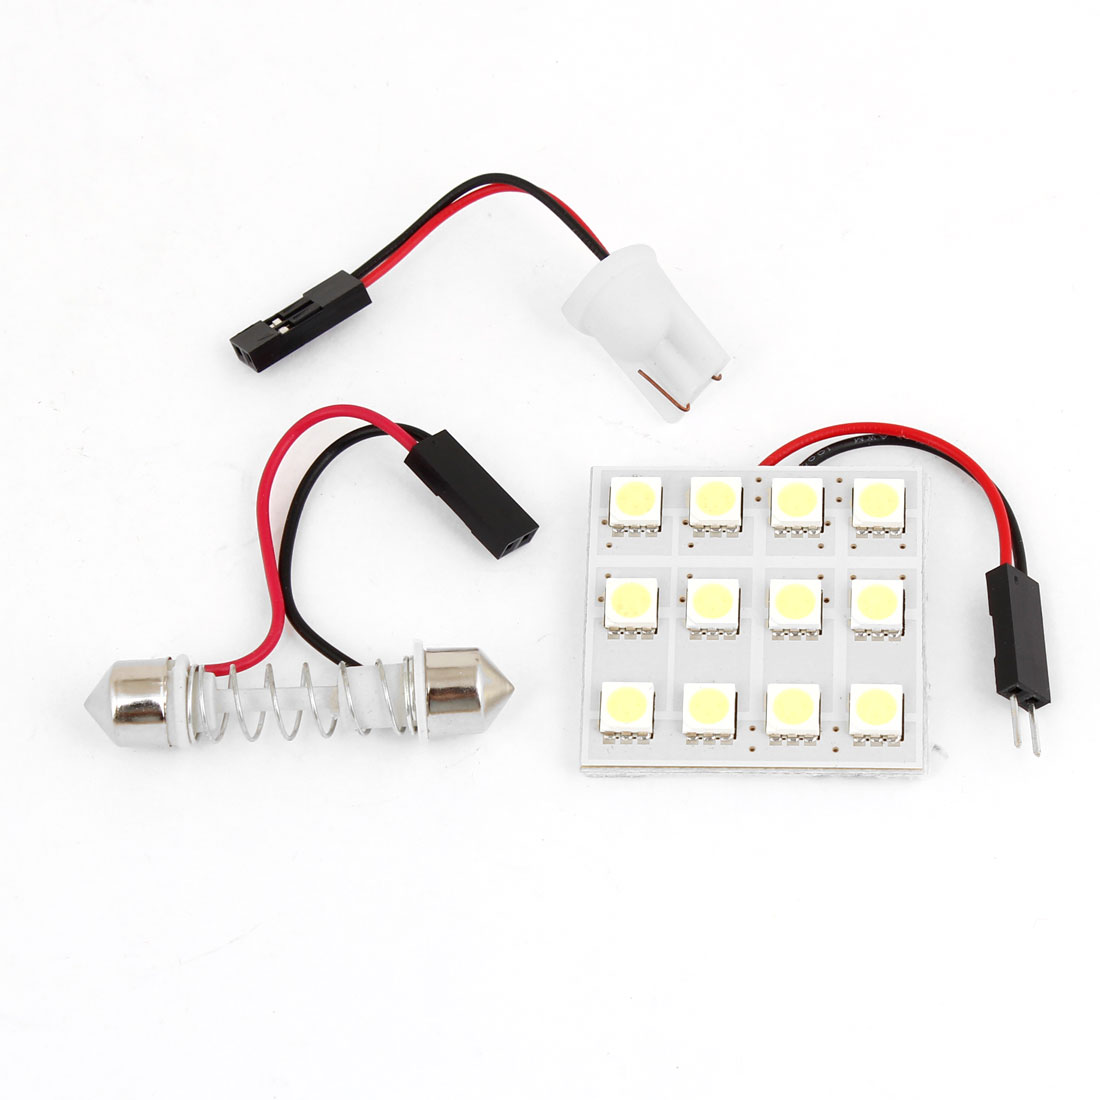 Auto Car Interior Roof White 5050 SMD 12 LED Light Panel w T10 Festoon Adapter